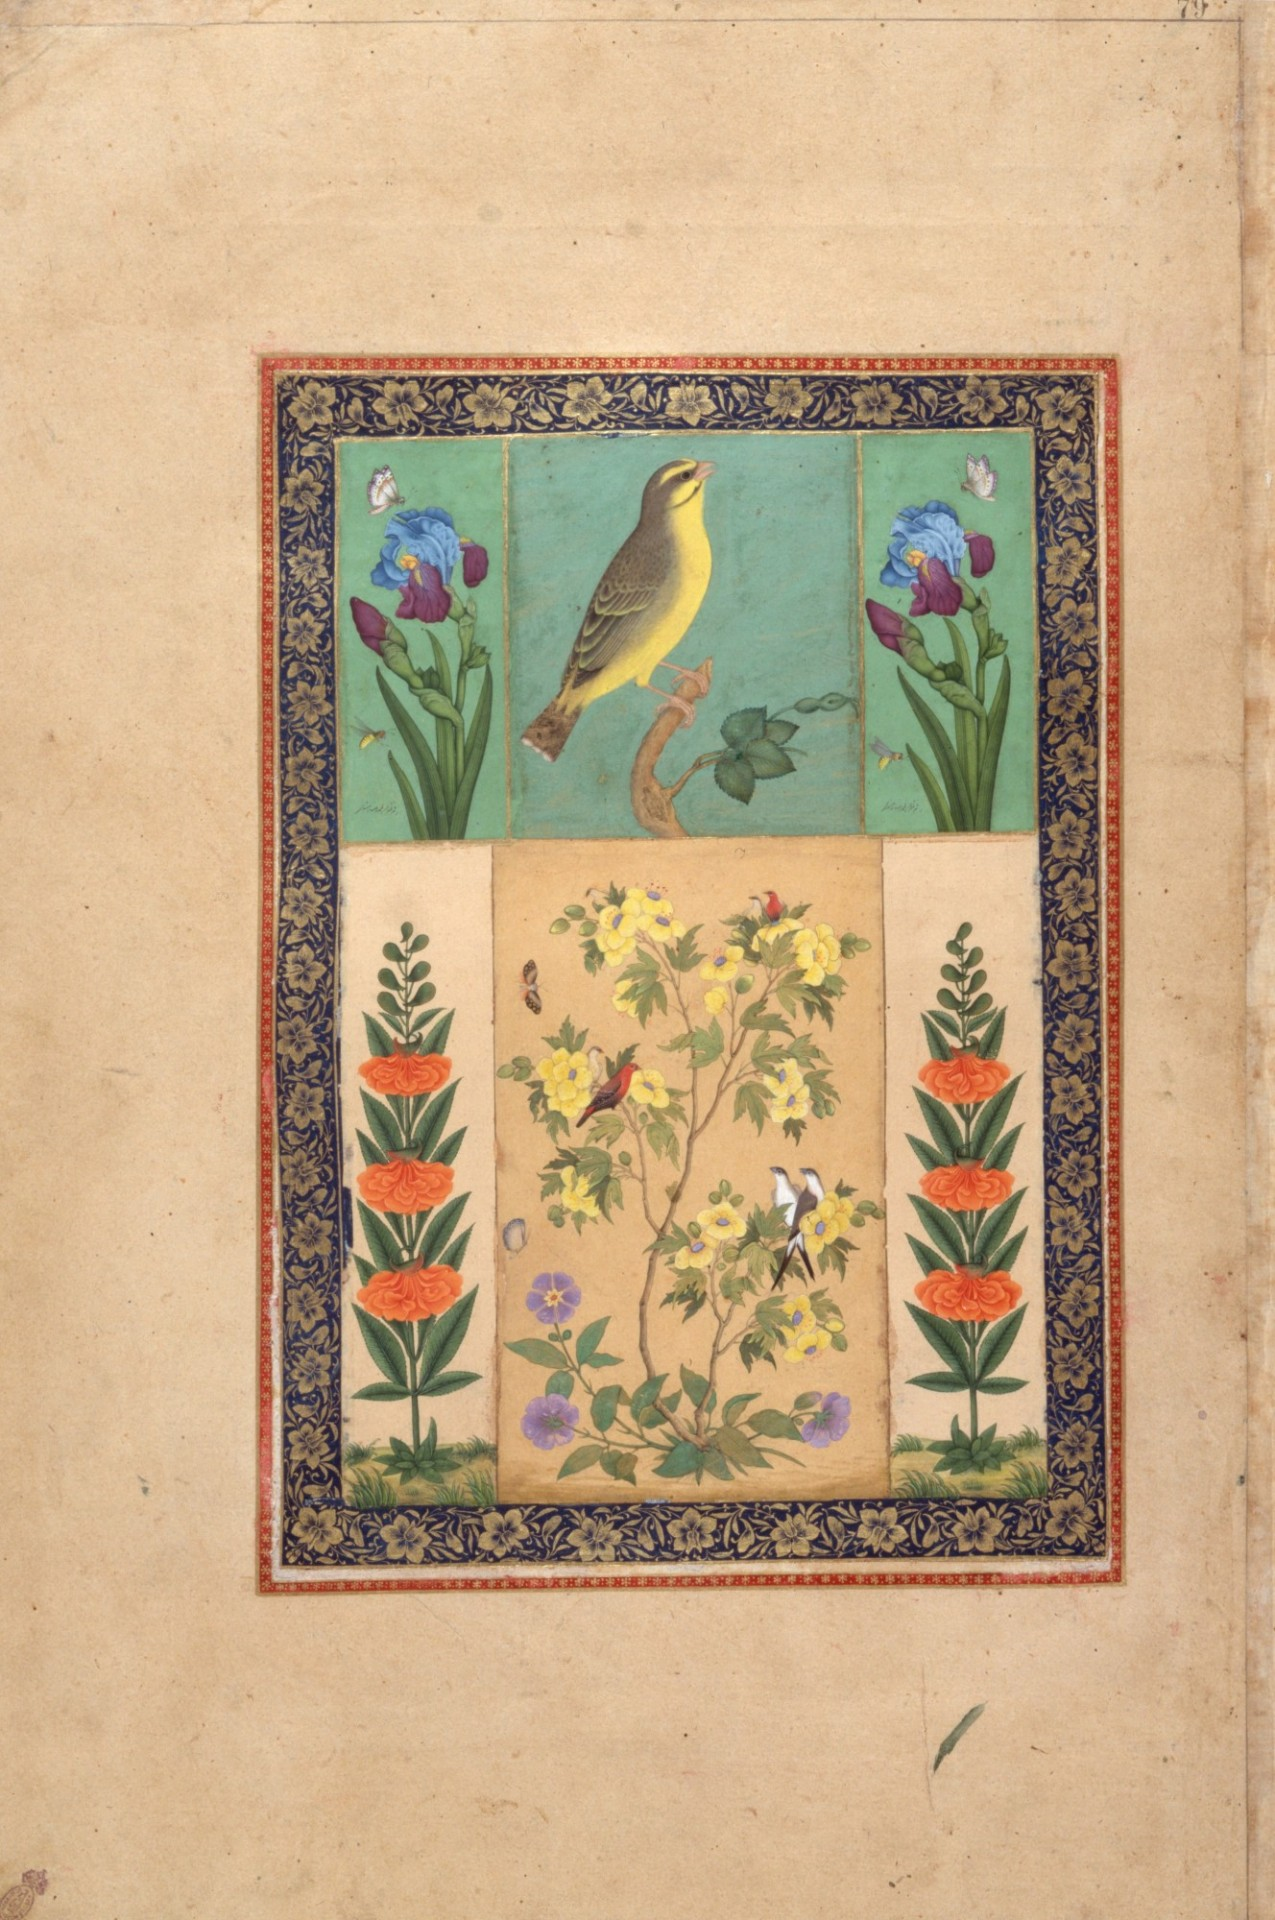 Bird and Flowers (List, no. 122). Iran, mid-18thcentury (Institute of Oriental Studies, Russian Academy of Sciences, St. Petersburg, E-14, fol. 79).